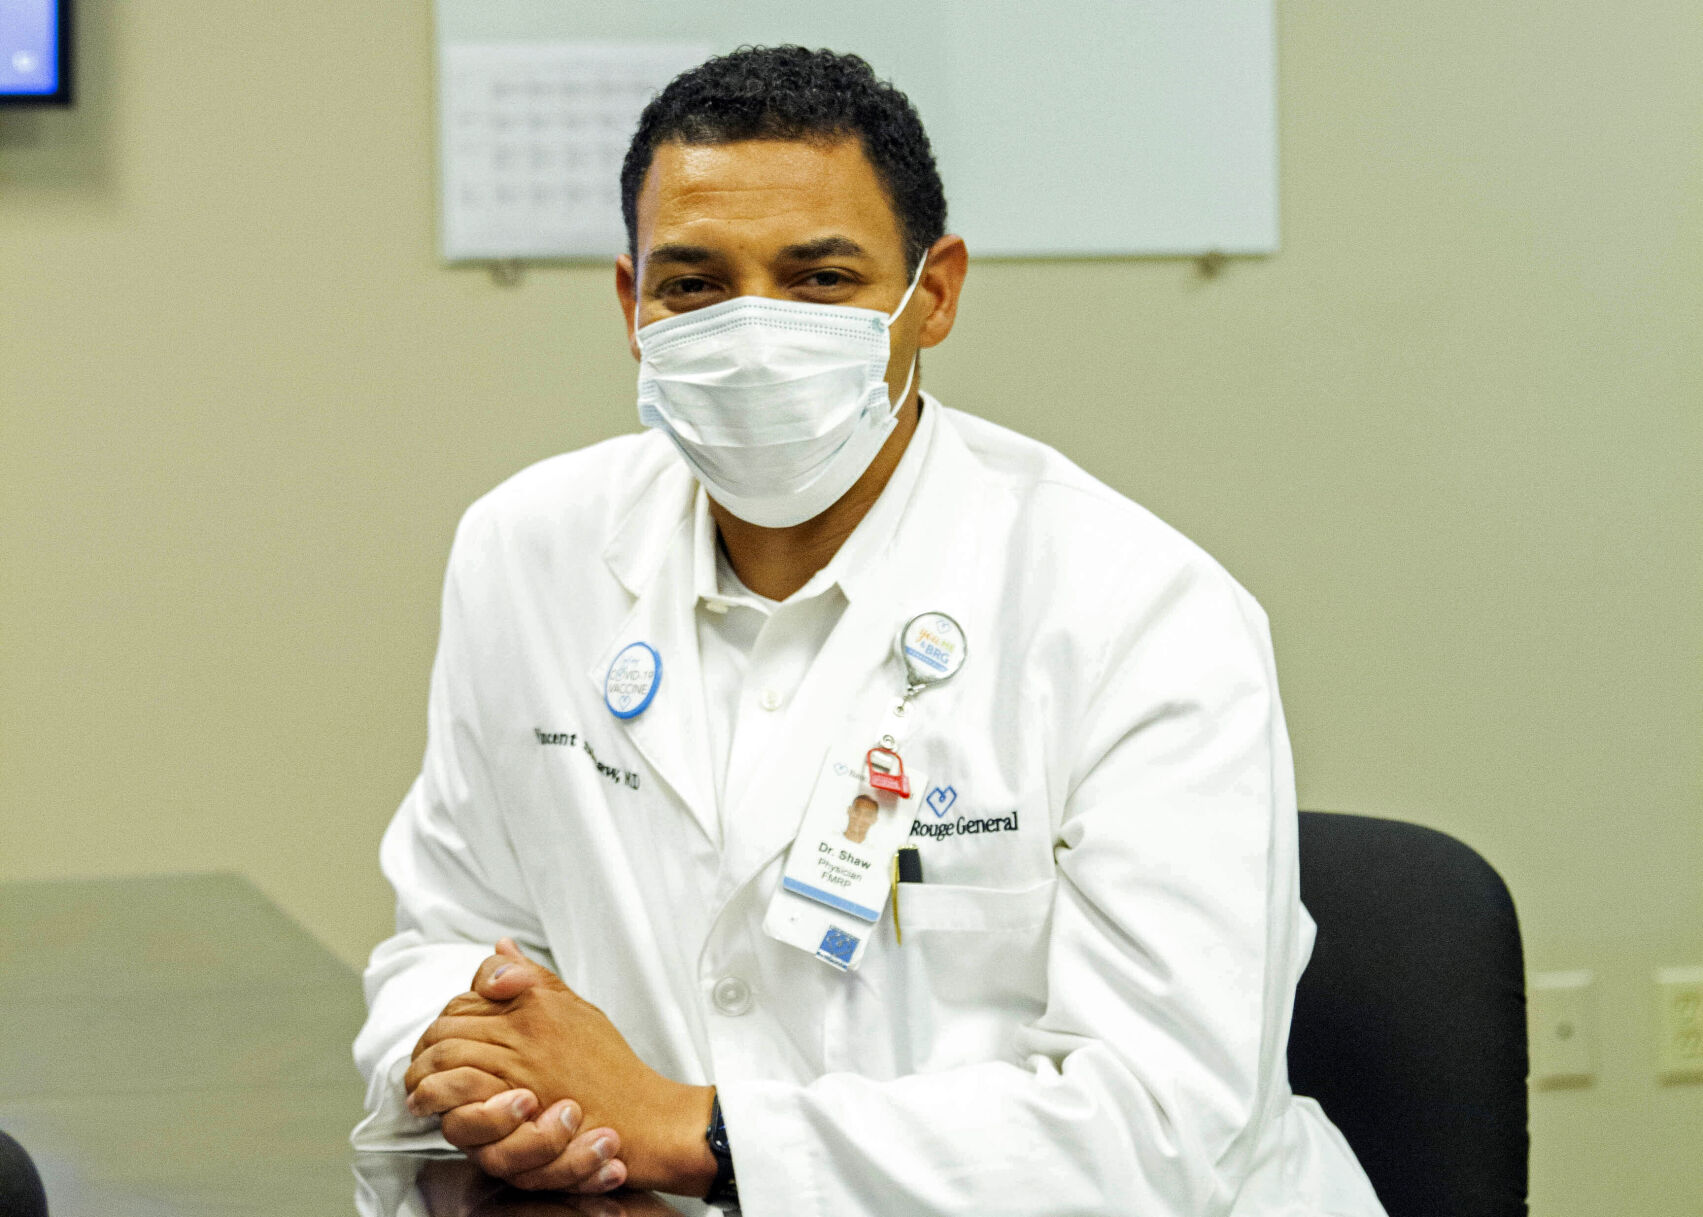 <p>Dr. Vincent Shaw poses for a portrait in Baton Rouge, La., Wednesday, Sept. 29, 2021. He commonly hears patients tell him they haven't done enough research on the COVID-19 vaccines. Rest assured, he tells them, the vaccine developers have done their homework.</p>